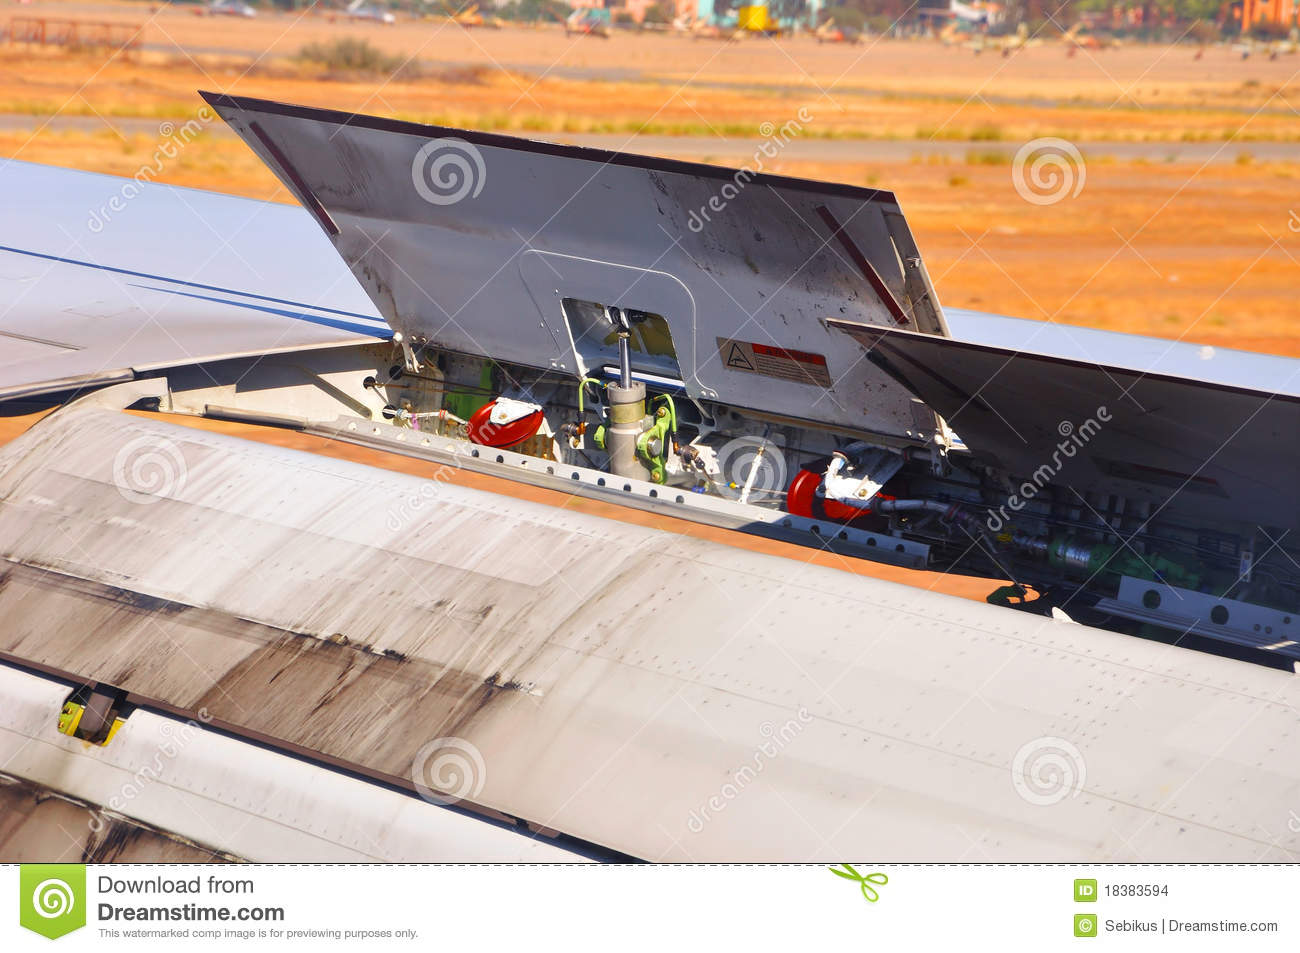 Aircraft engine of wing